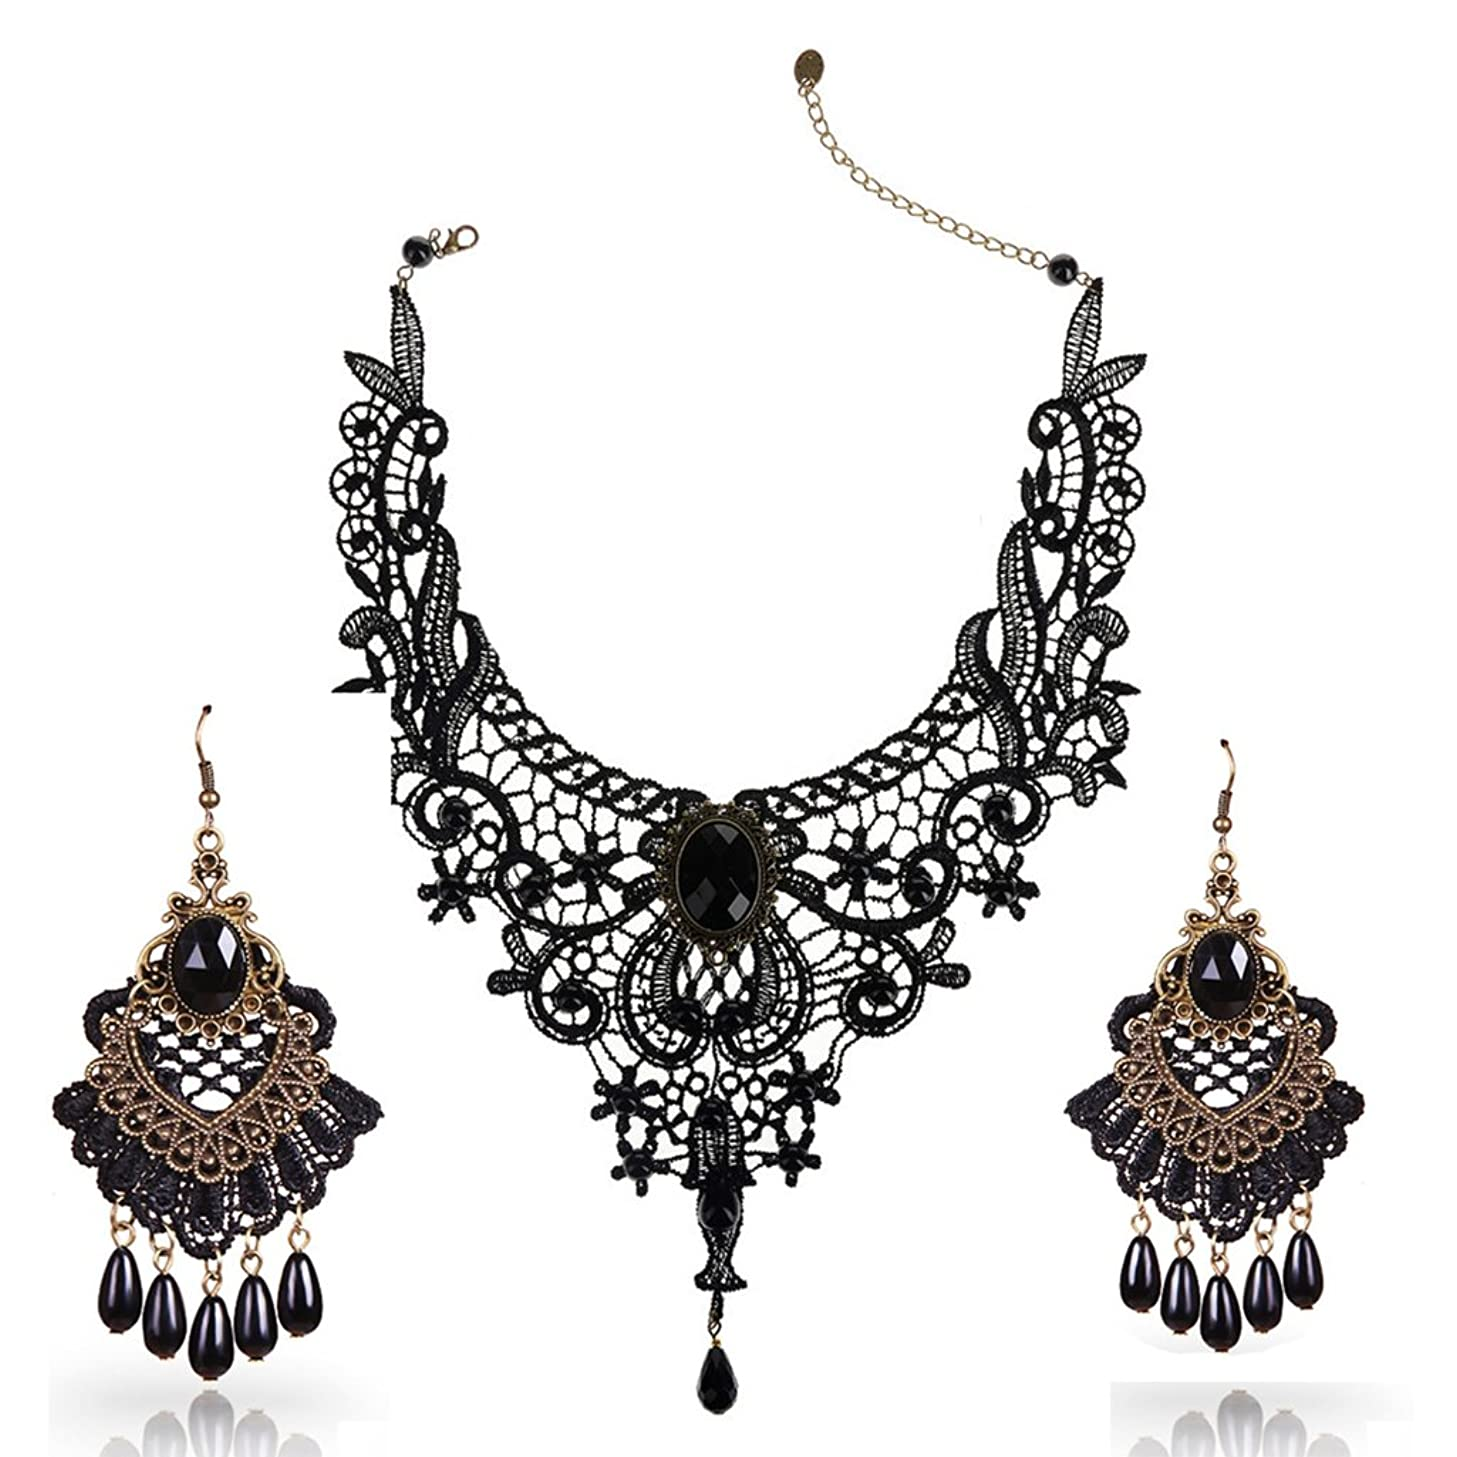 Youniker Choker Necklace for Women Gothic Black Lace Necklace Earrings Sets for Halloween Costume Party Punk Vintage Lolita Choker Pendant Chain